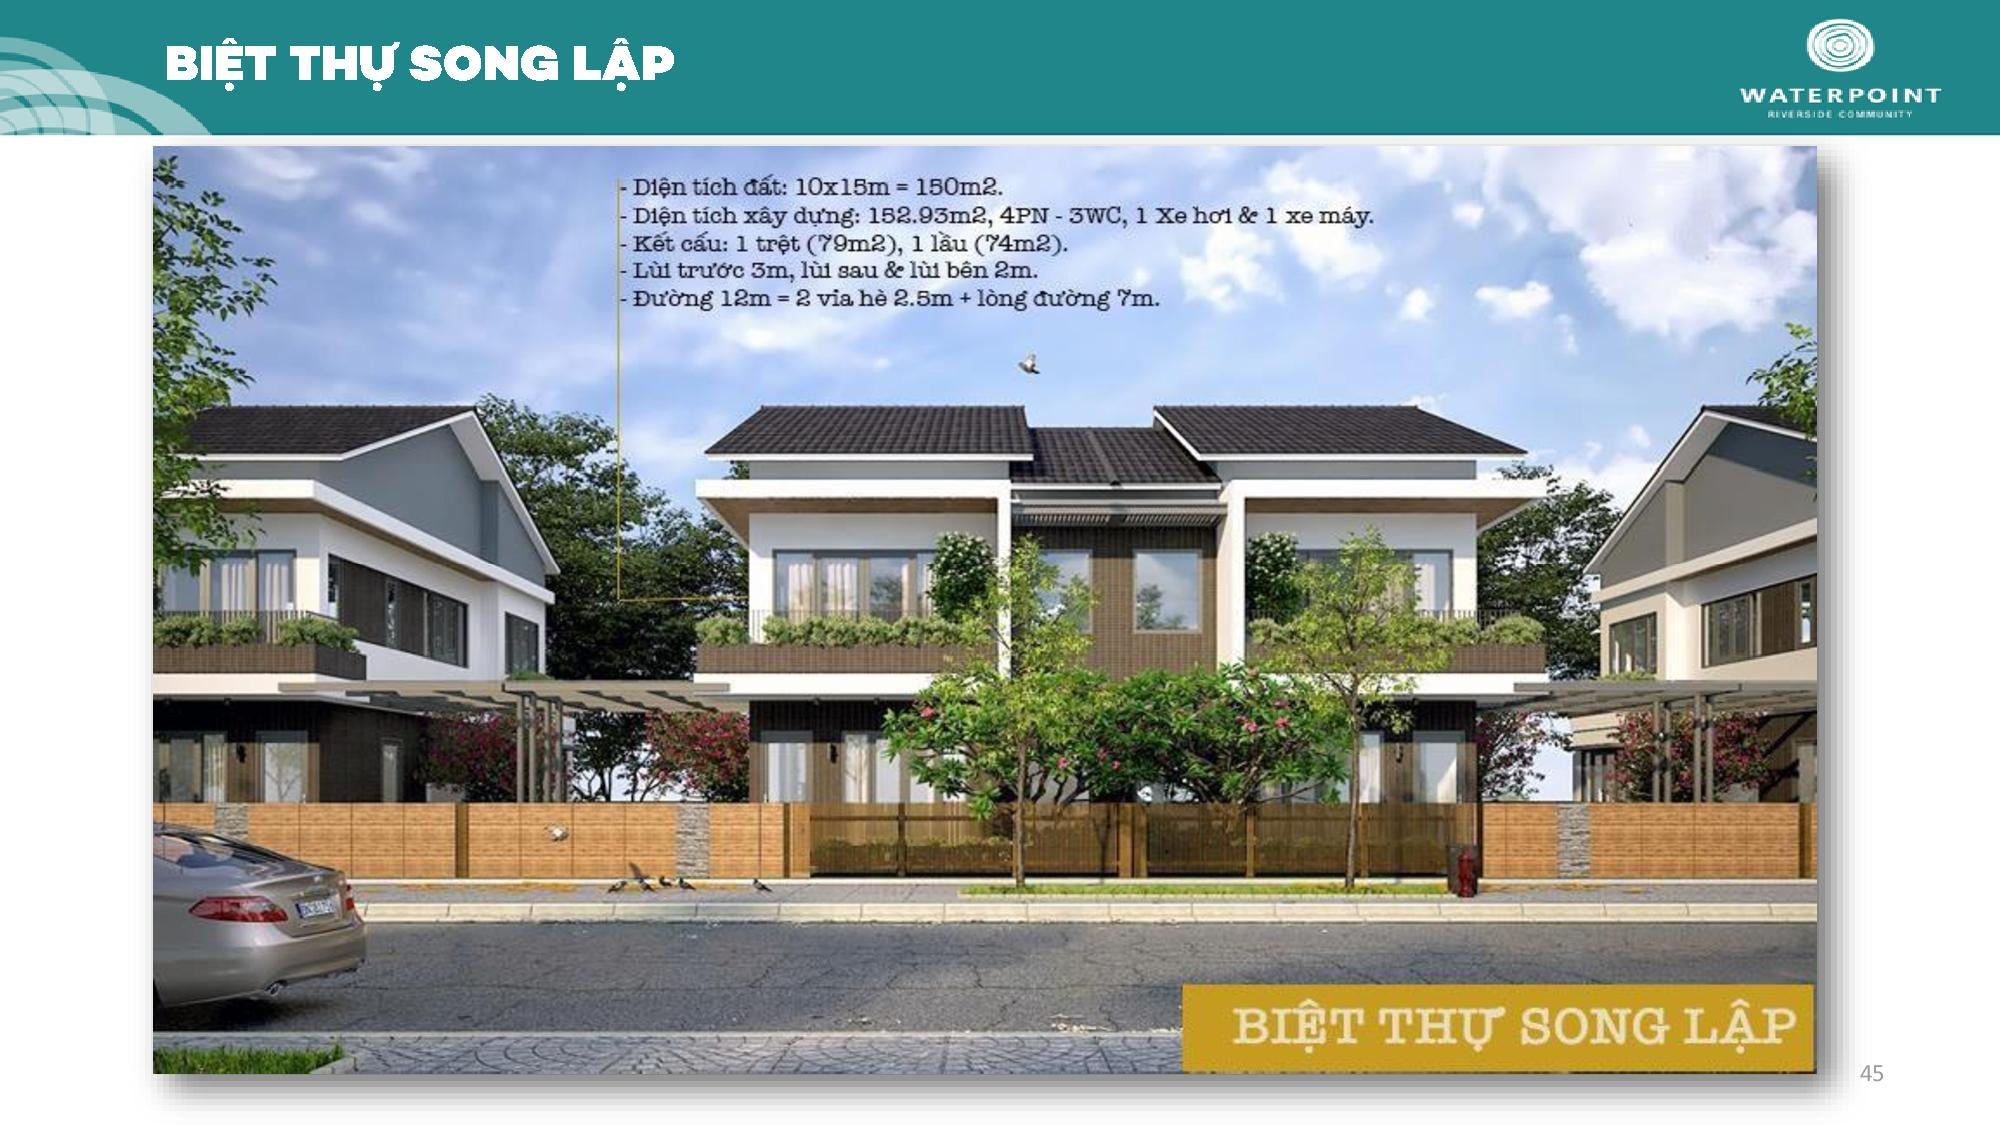 Biệt thự song lập Waterpoint Long An